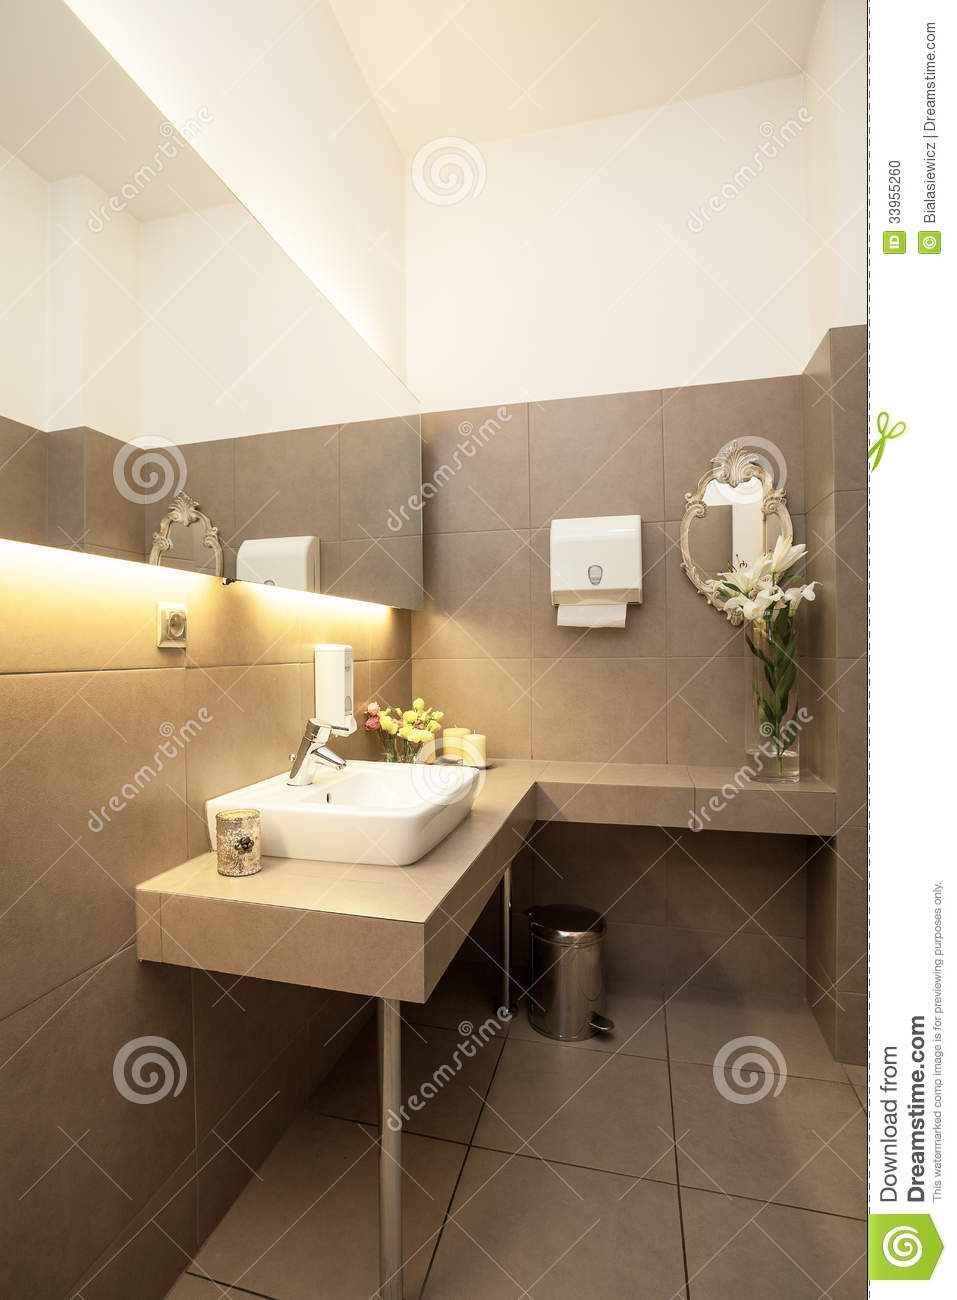 Luxury toilet interior